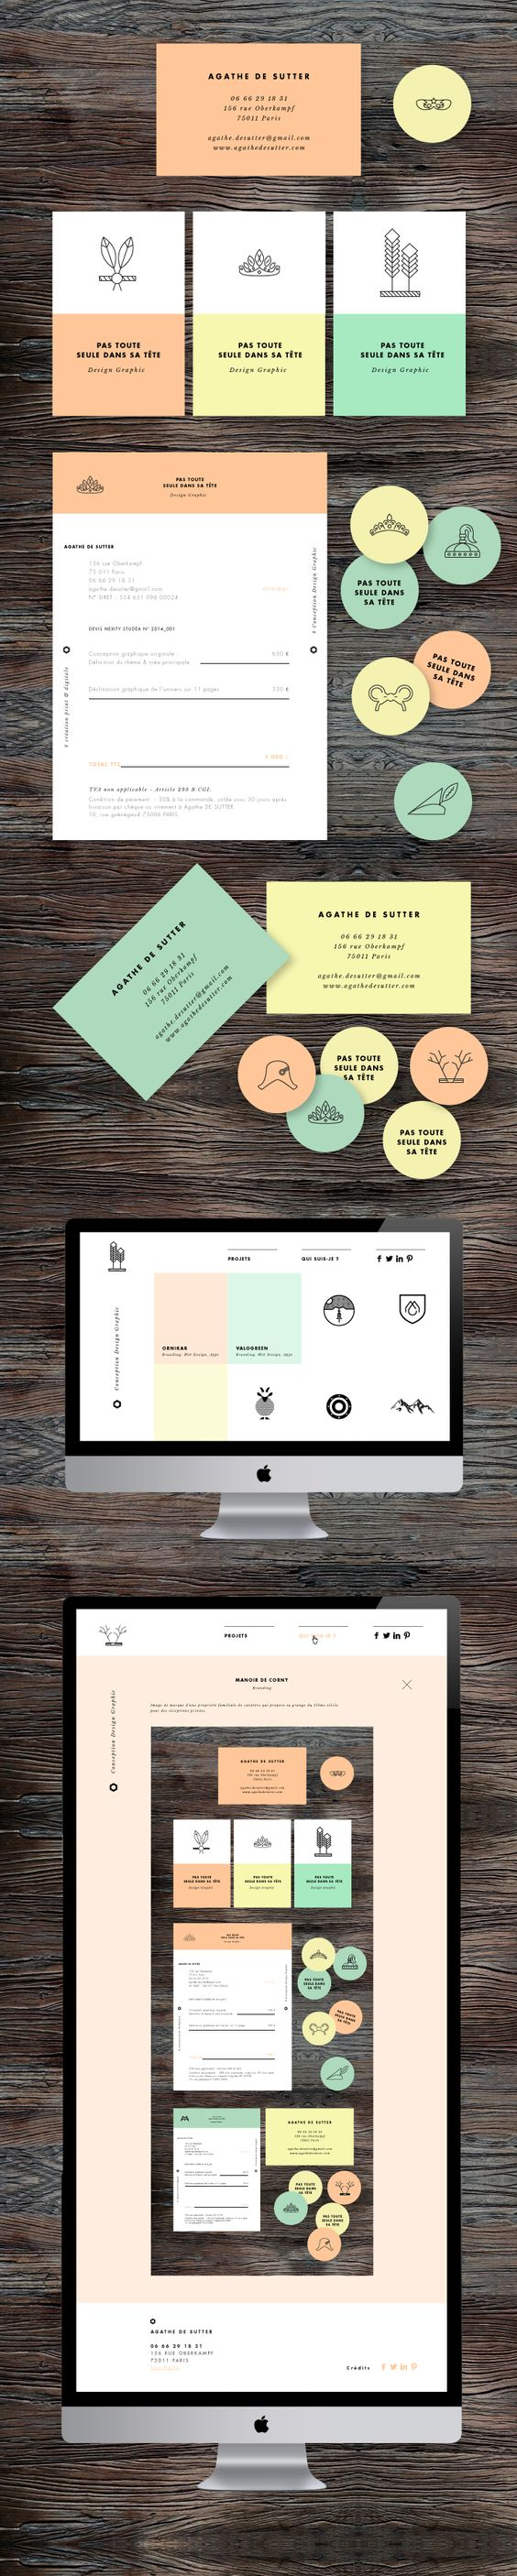 Colorful branding concept for a design studio, clean modern, use of icons and colors